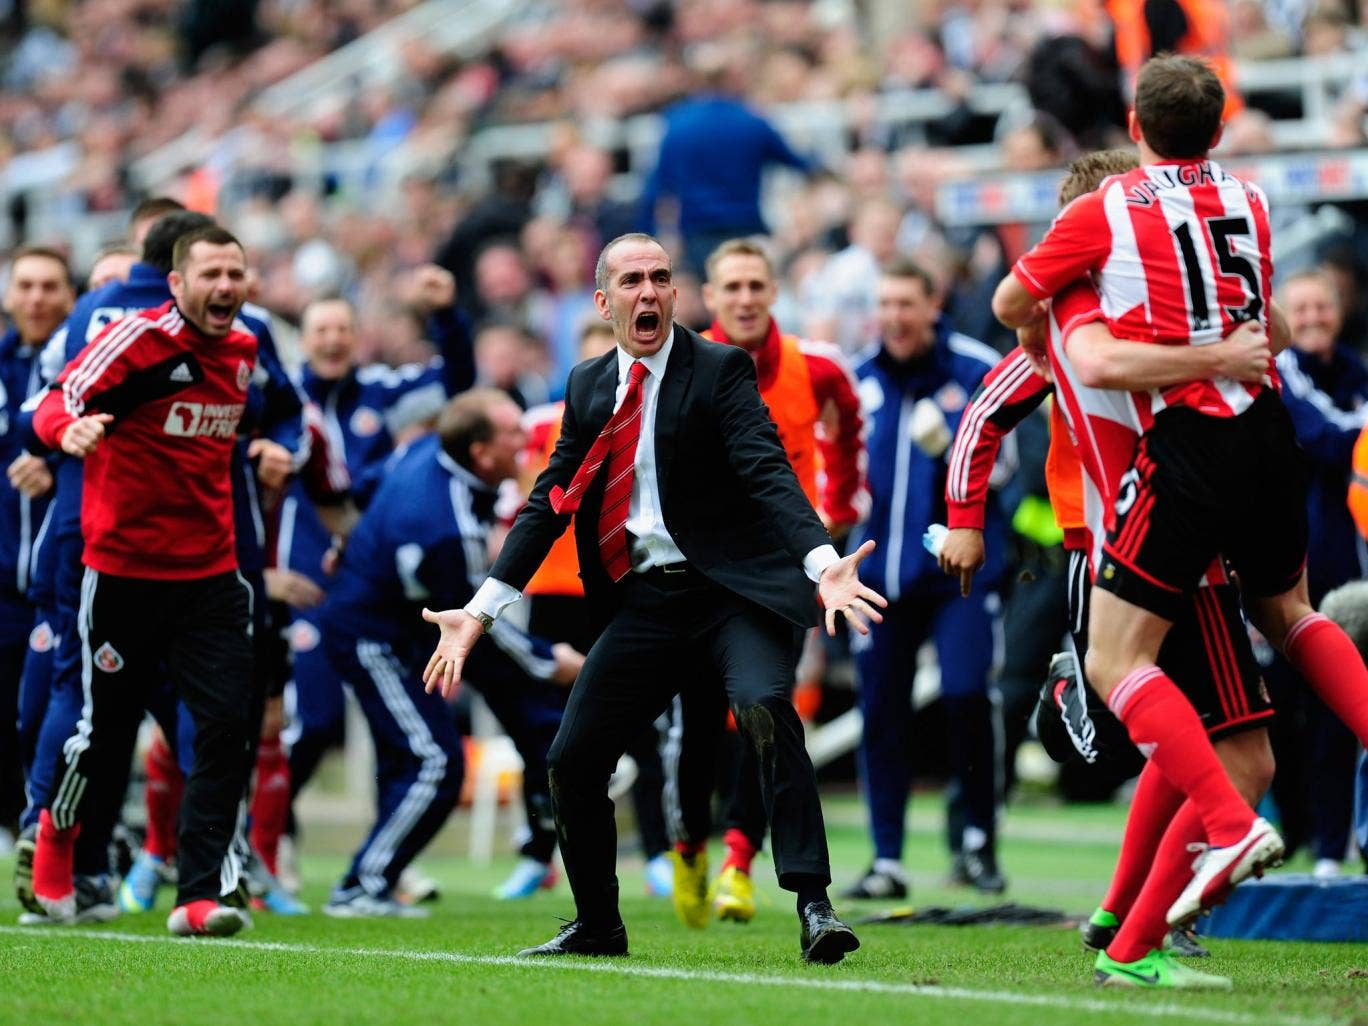 Paolo Di Canio celebrates during Sunderland's victory over Newcastle in the Premier League at St James' Park